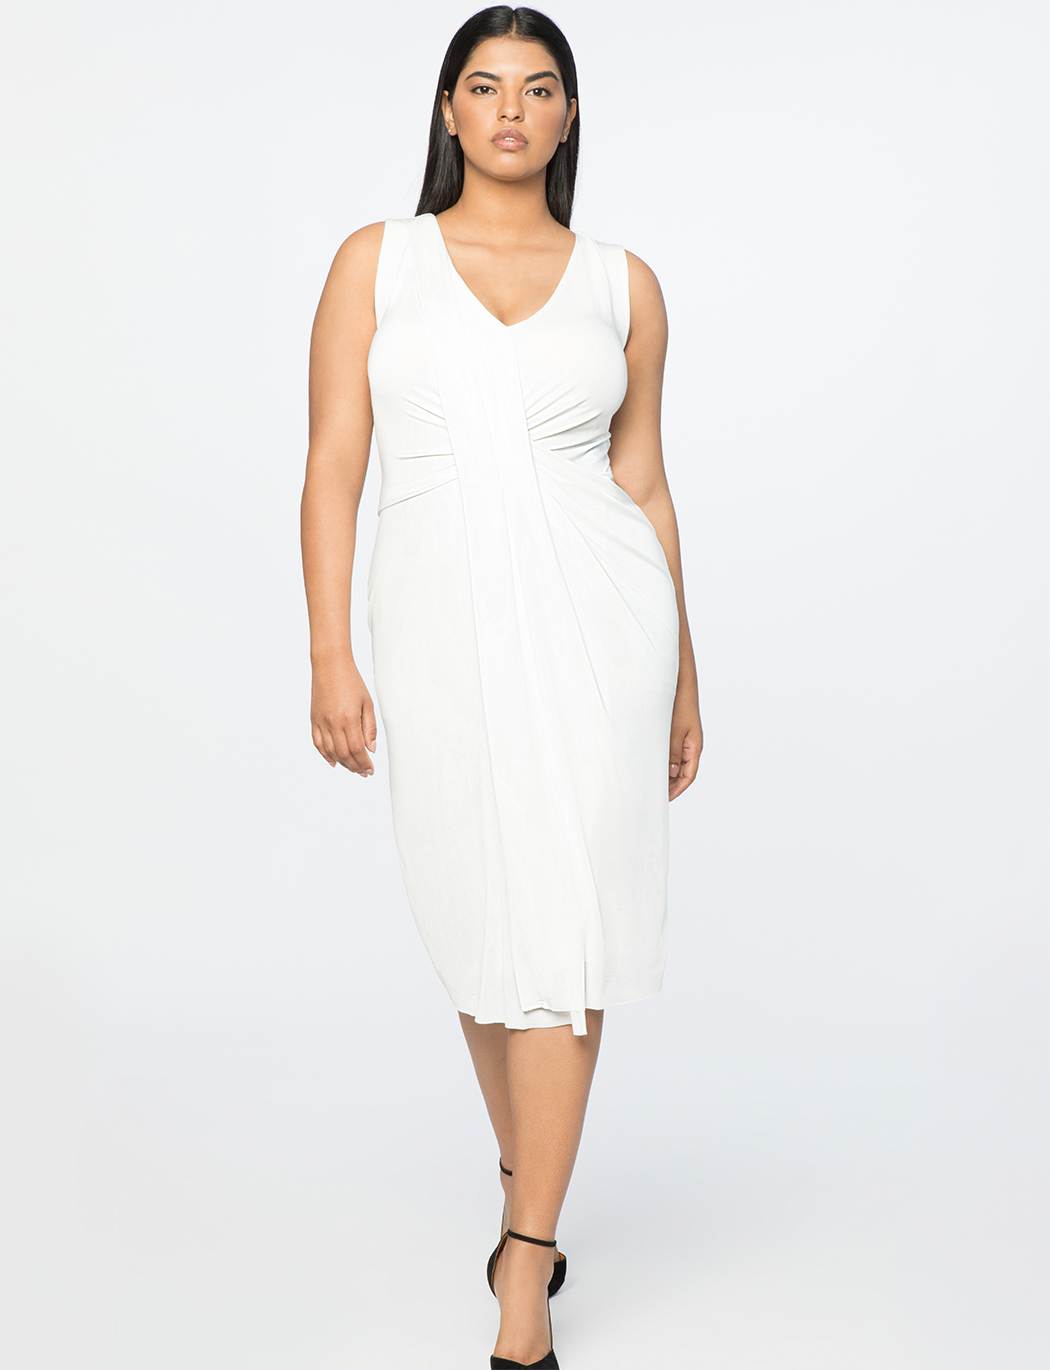 Jason Wu X ELOQUII Drape Front V-Neck Dress